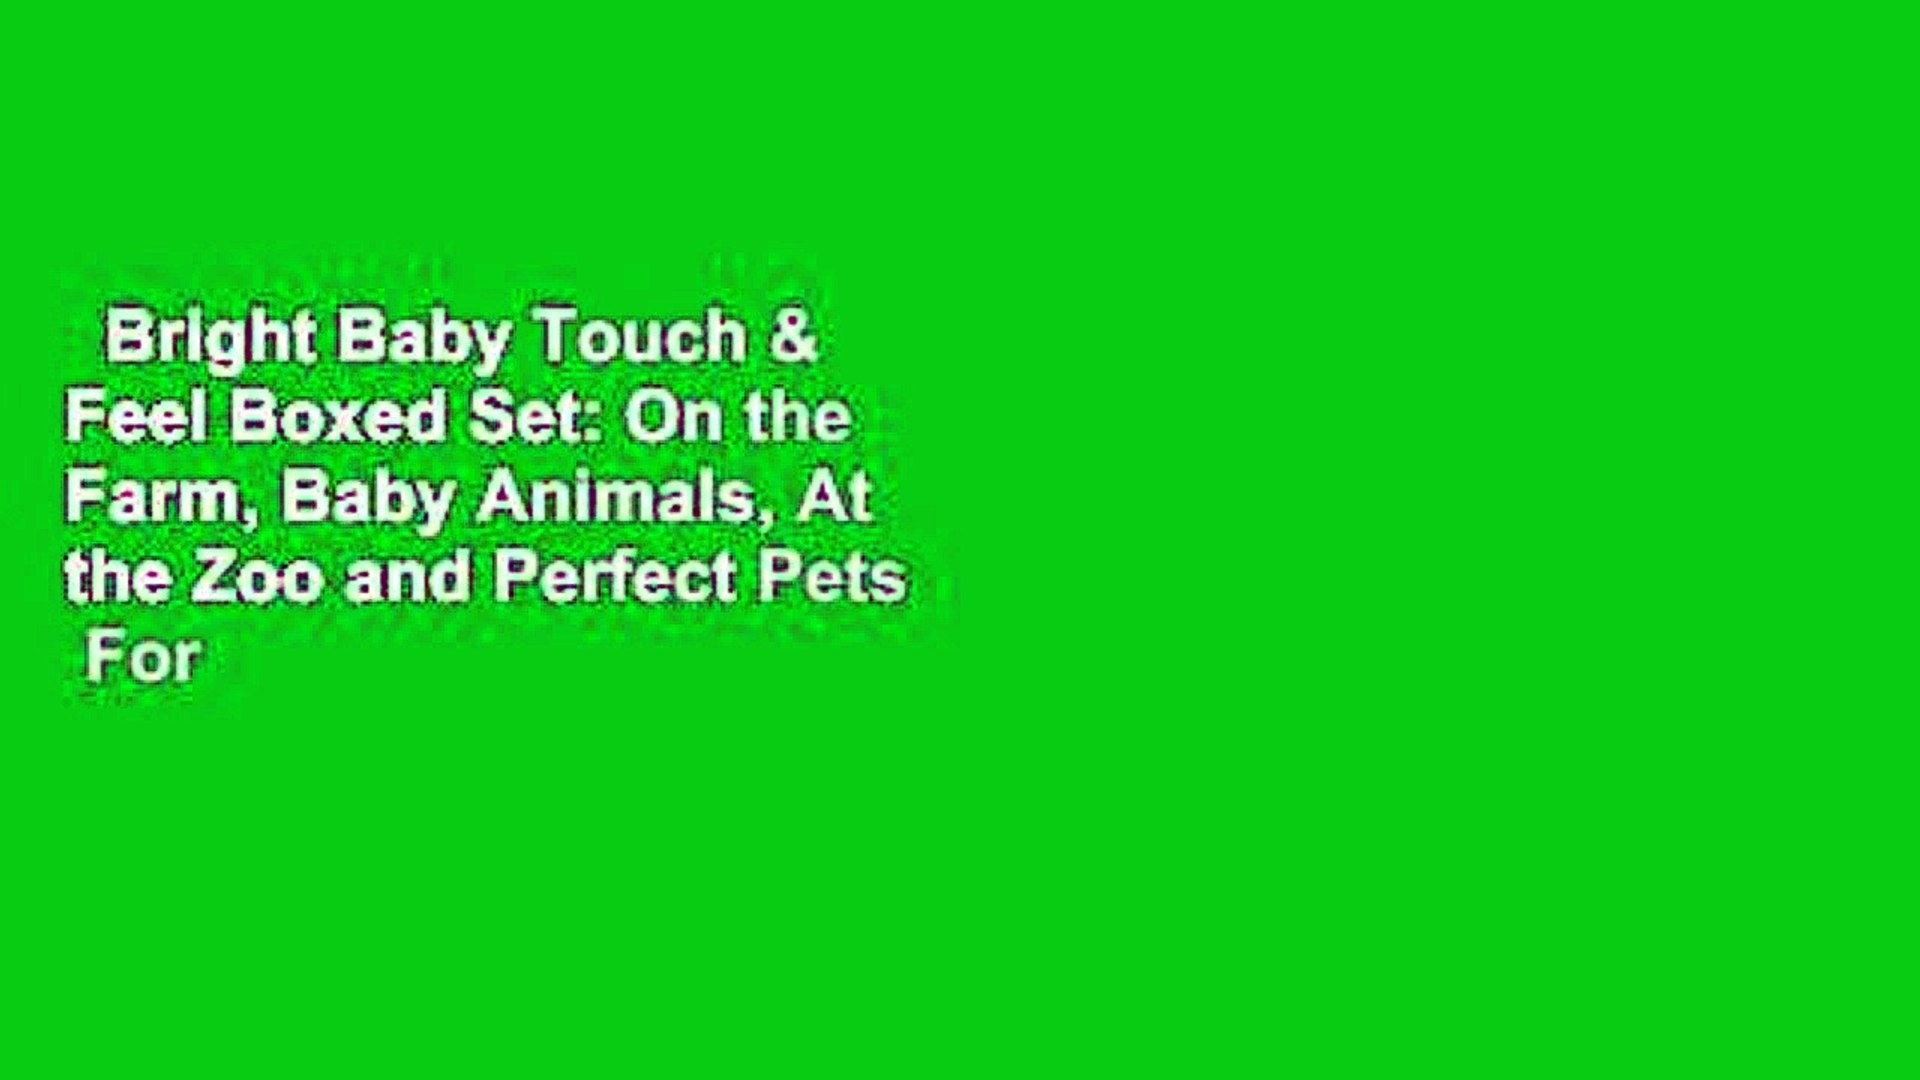 Bright Baby Touch & Feel Boxed Set: On the Farm, Baby Animals, At the Zoo and Perfect Pets  For